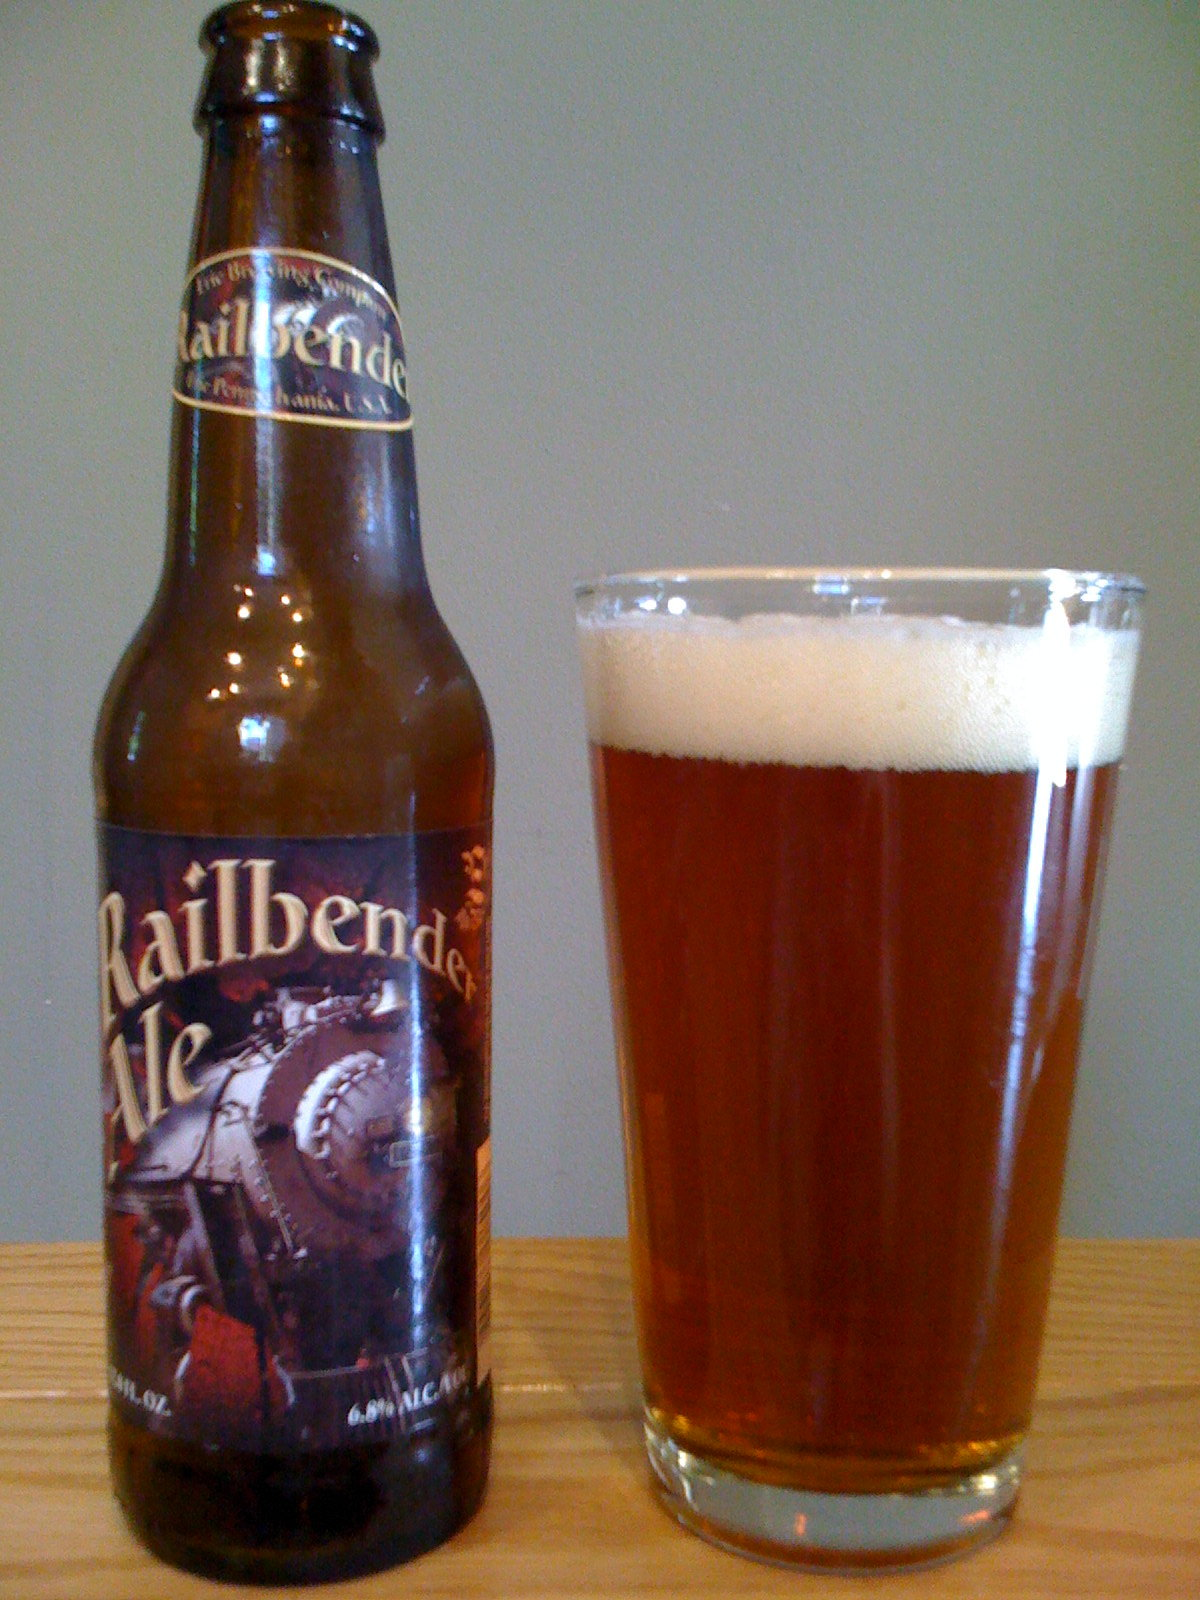 Erie Brewing Railbender Ale